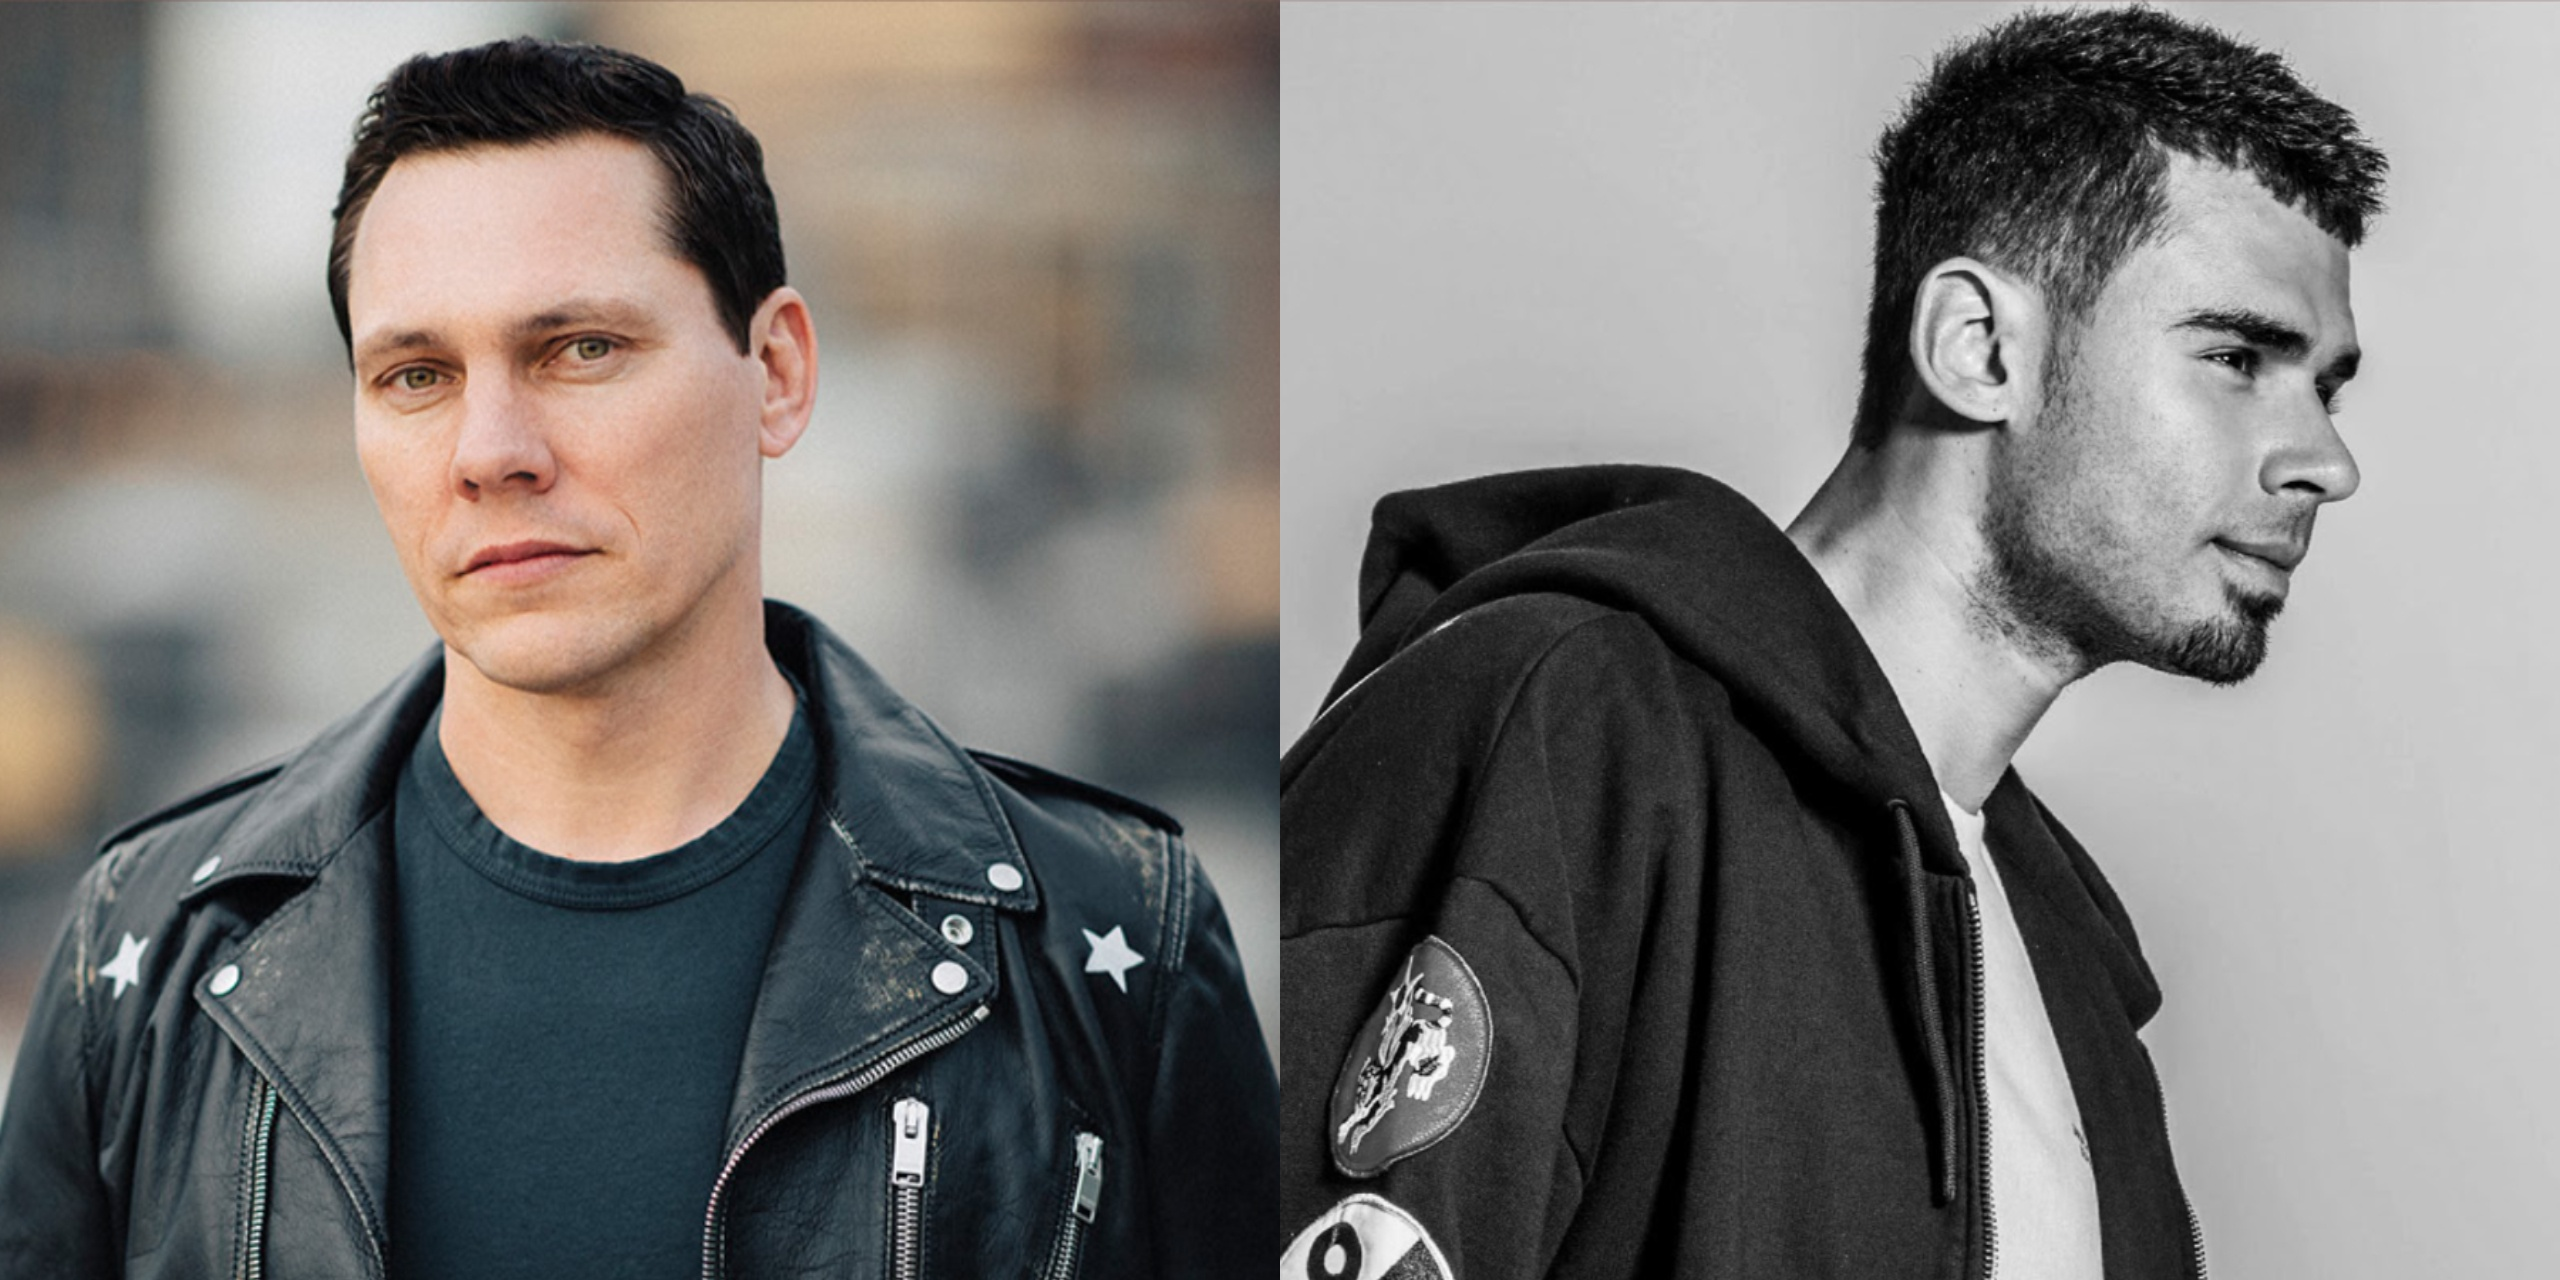 Tiesto and Afrojack to perform at Marquee Singapore opening